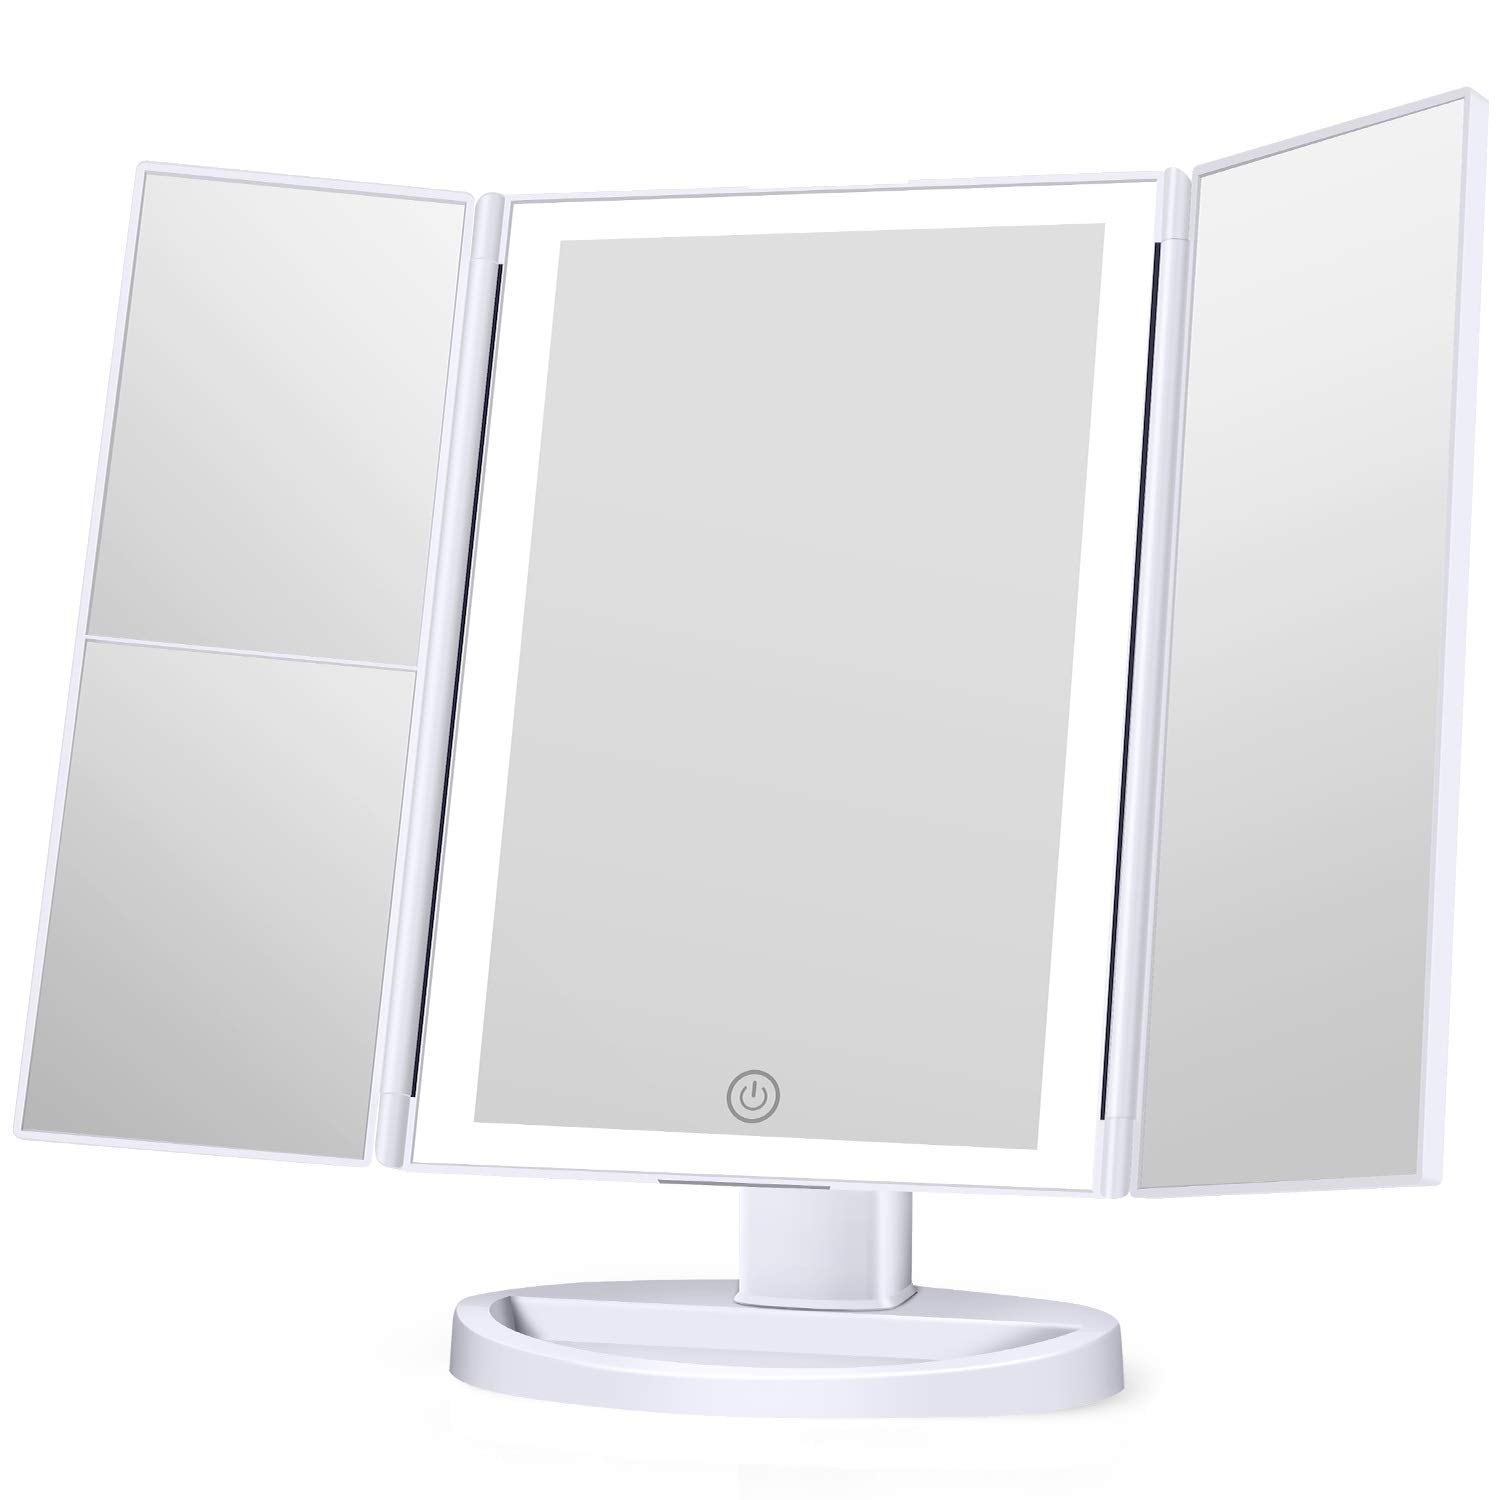 Makeup Mirror with Lights, 3 Color Lighting Vanity Mirror with 72LEDs, 1x 2X 3X Magnification, Touch Control, Portable…